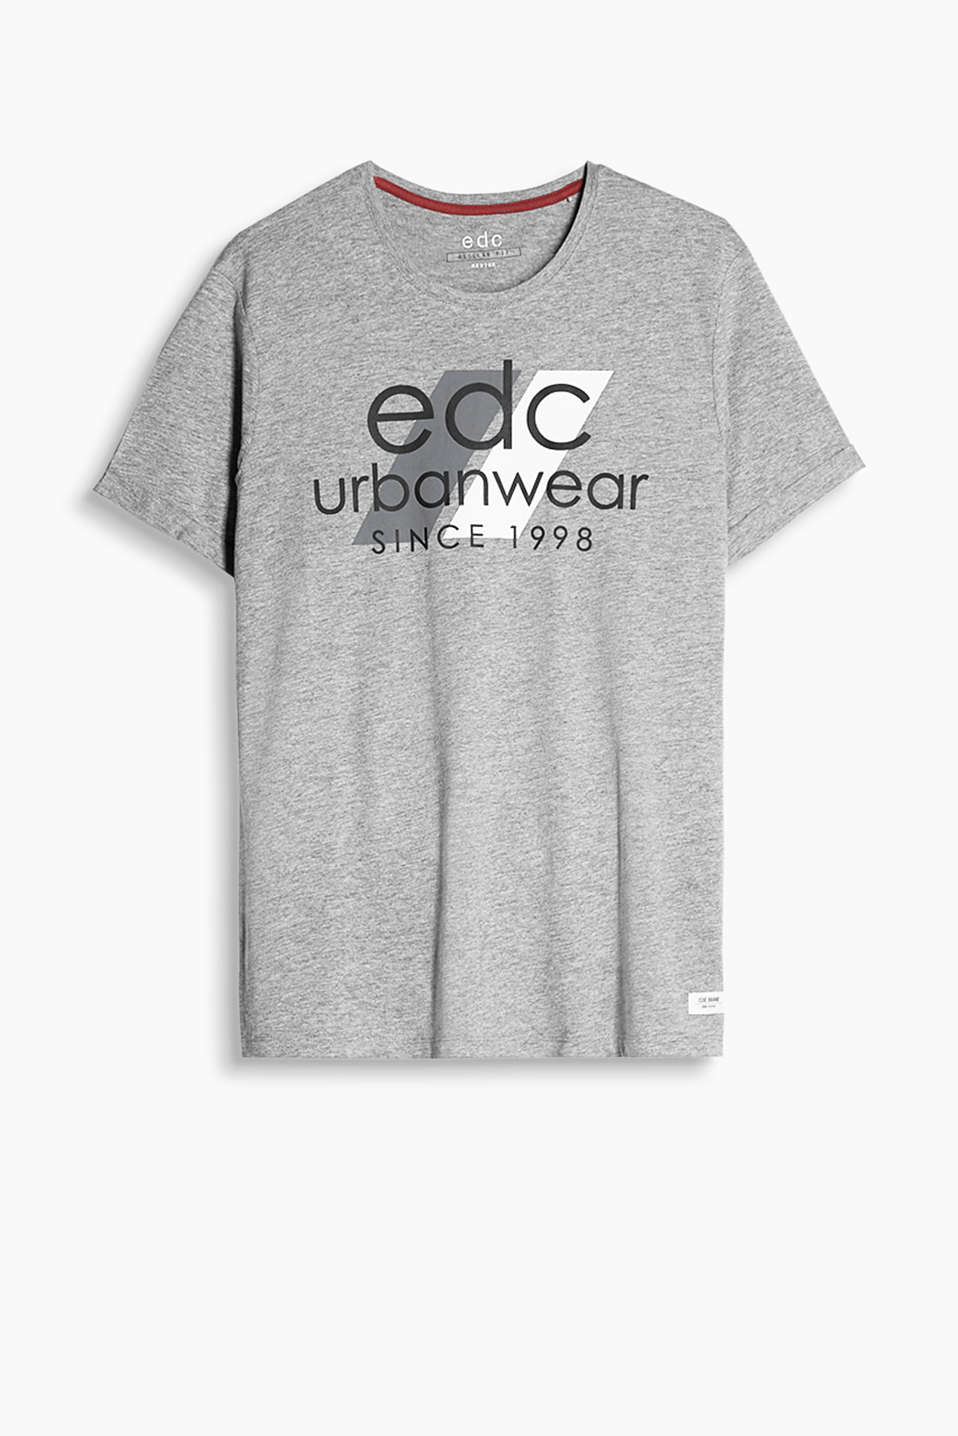 Soft, blended cotton T-shirt with a ribbed, round neck trim and an urban-style logo print